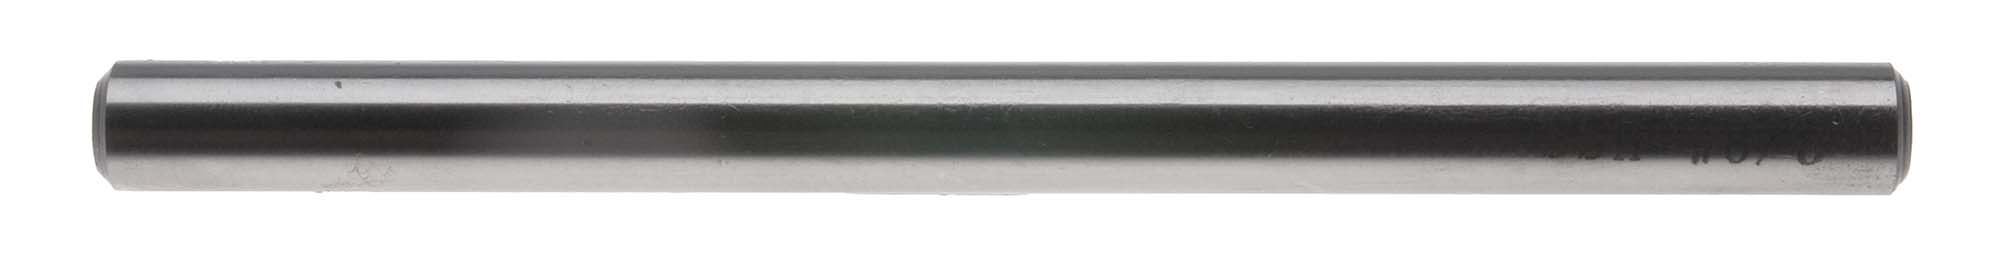 "V (.377"") Jobber Length Drill Blank, High Speed Steel"